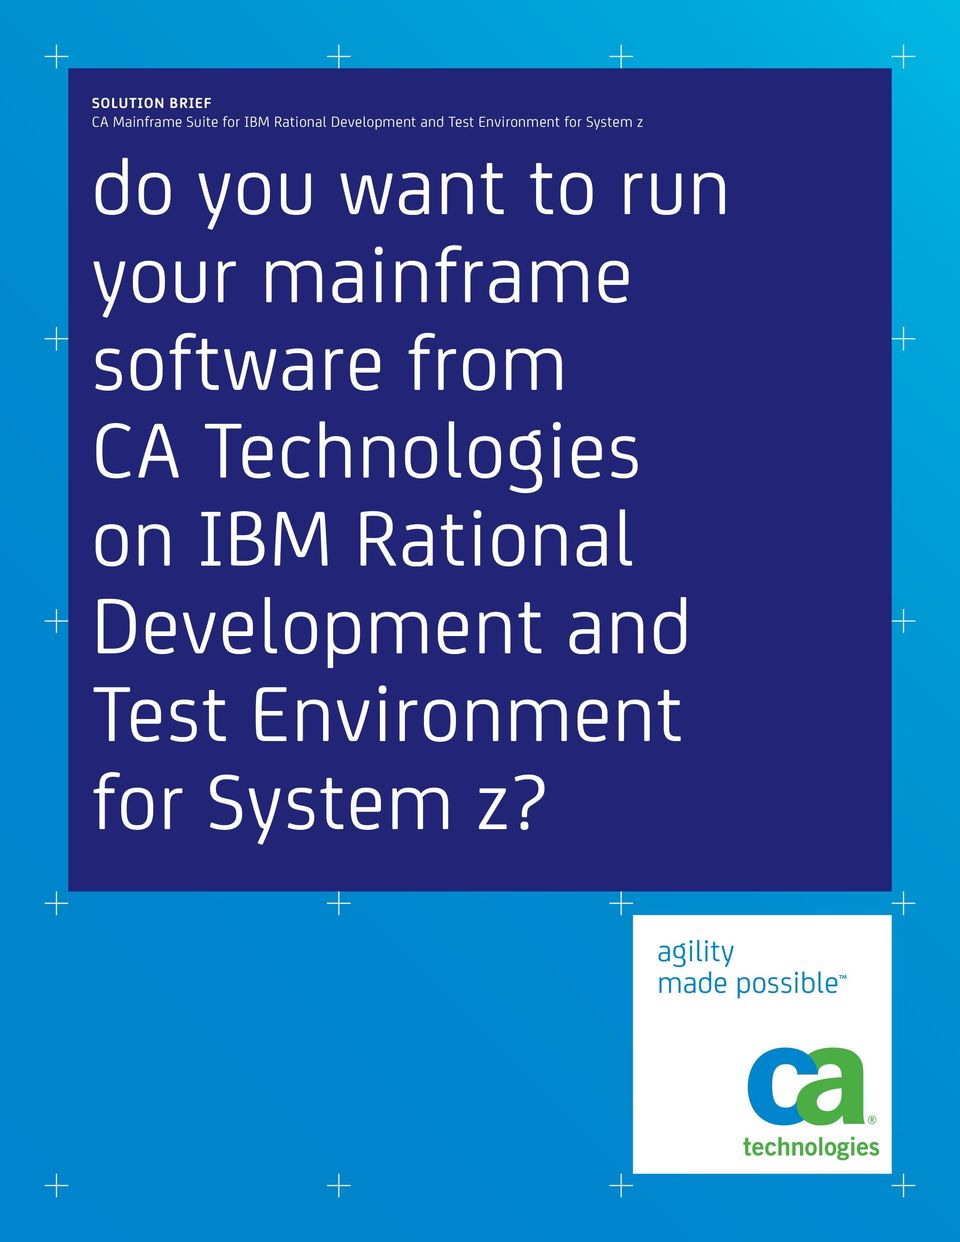 run your mainframe software from CA Technologies on IBM